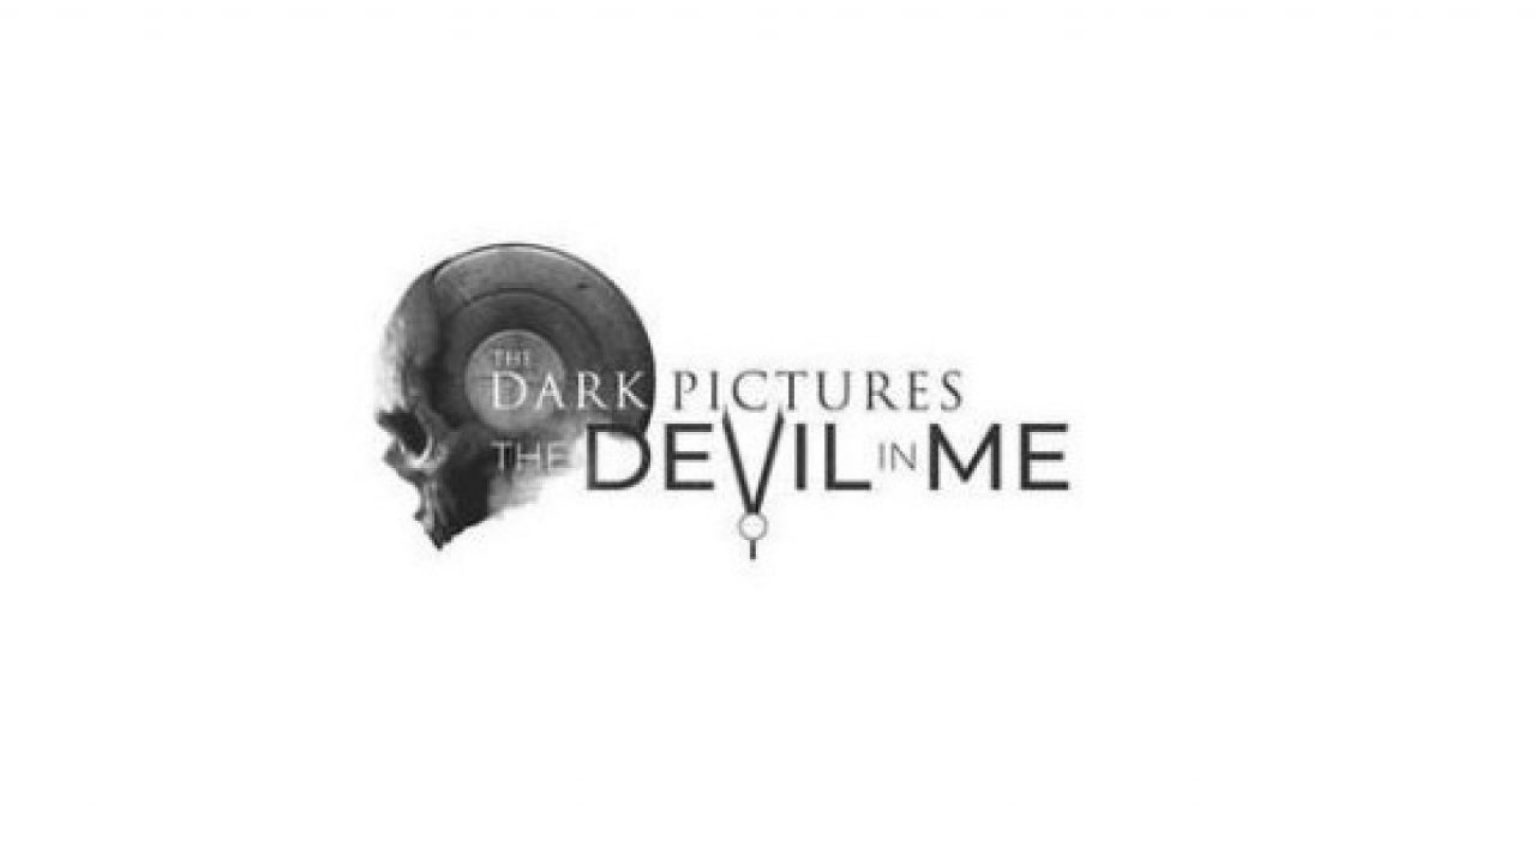 The Dark Pictures: The Devil in Me